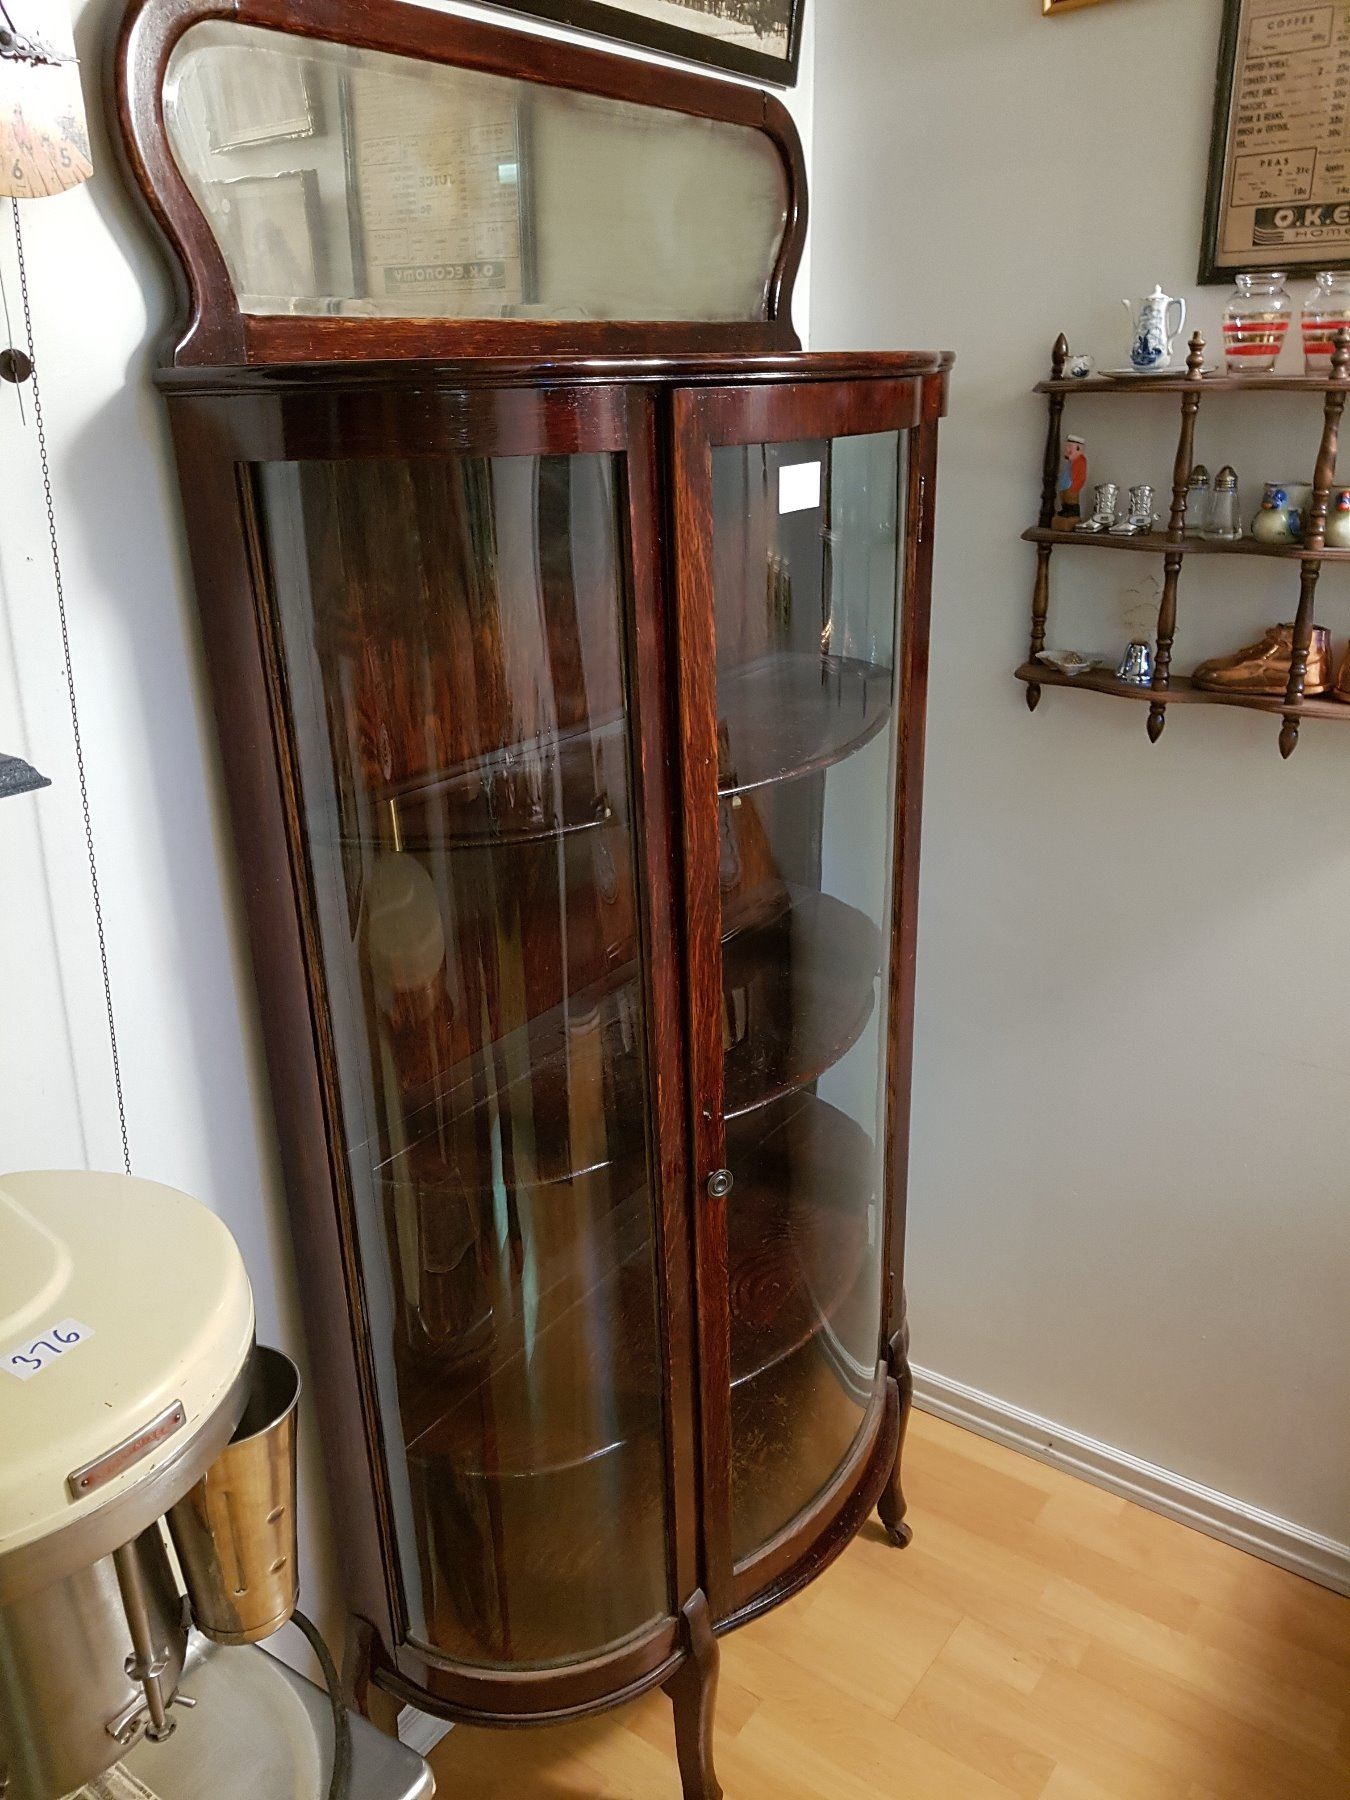 ... Image 2 : Antique Curved Glass China Cabinet With Mirror ... - Antique Curved Glass China Cabinet With Mirror